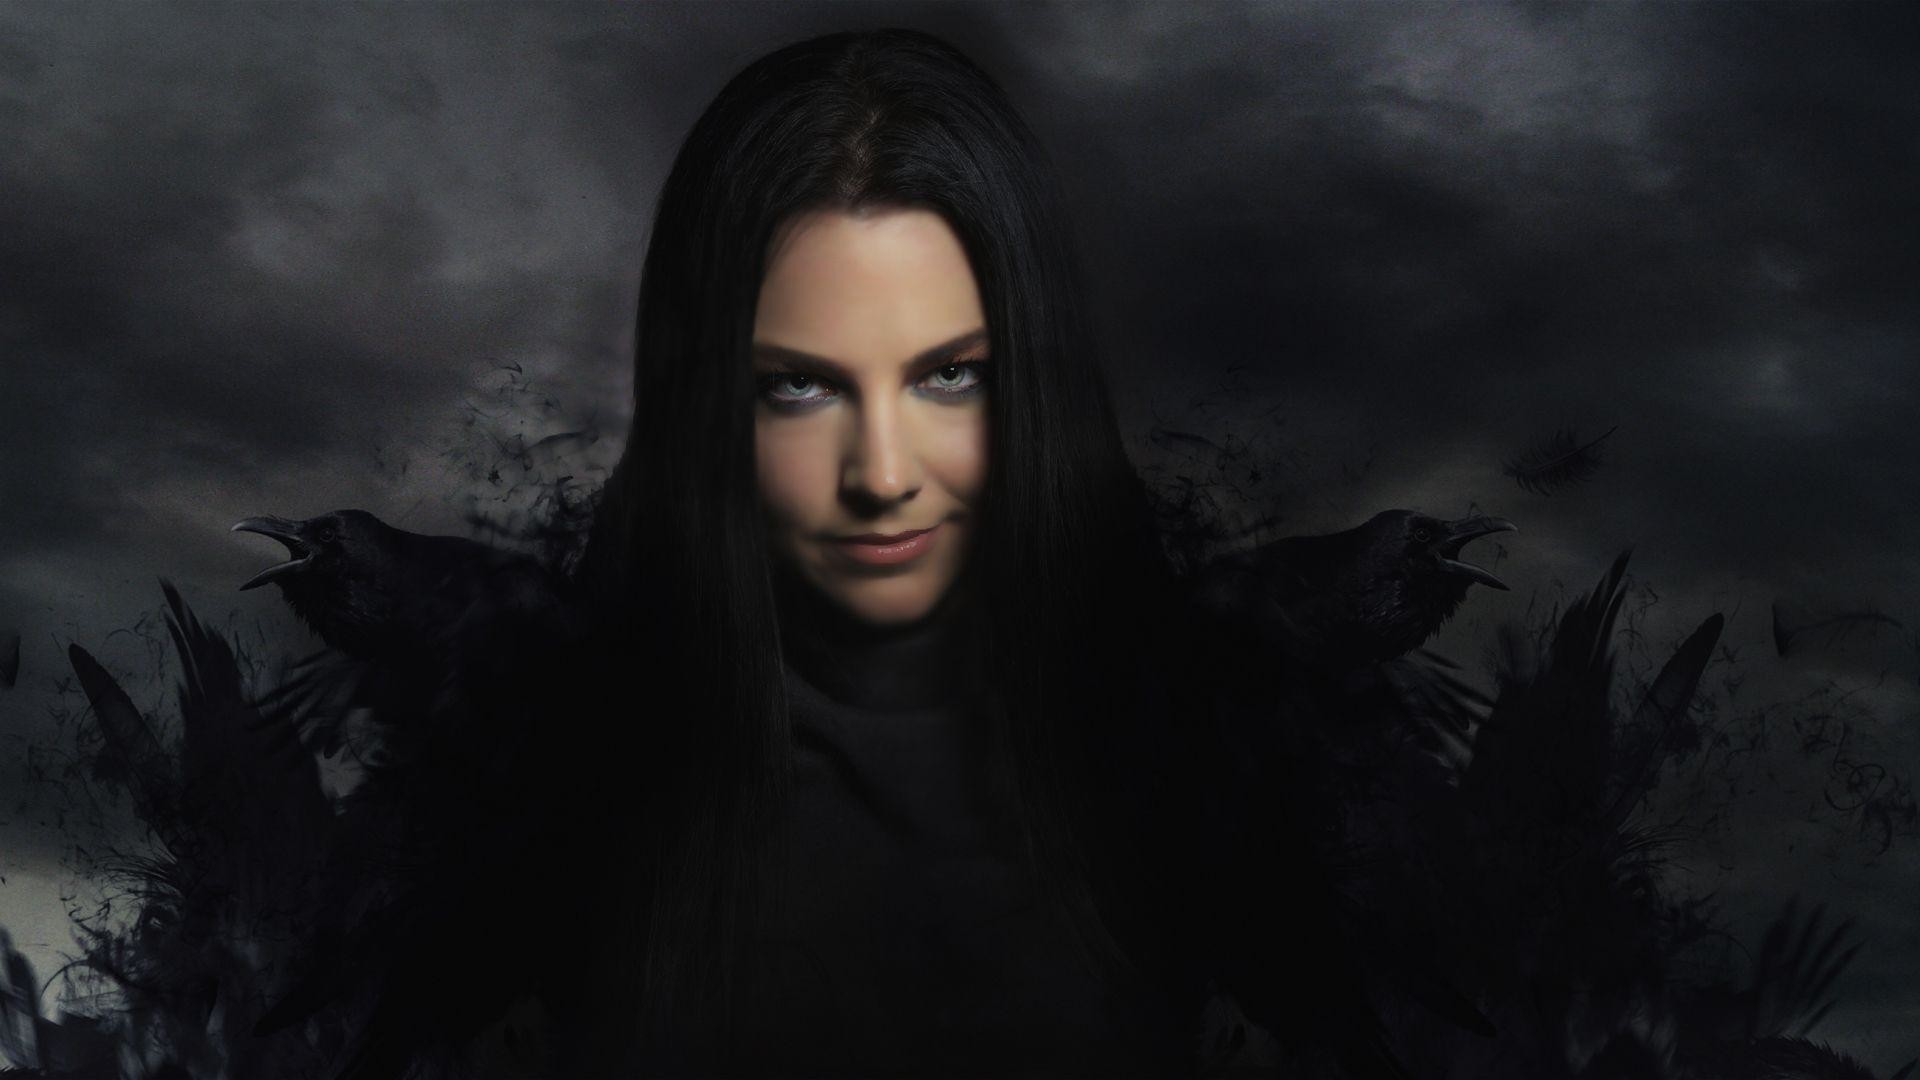 Amy Lee Wallpaper 58 images 1920x1080